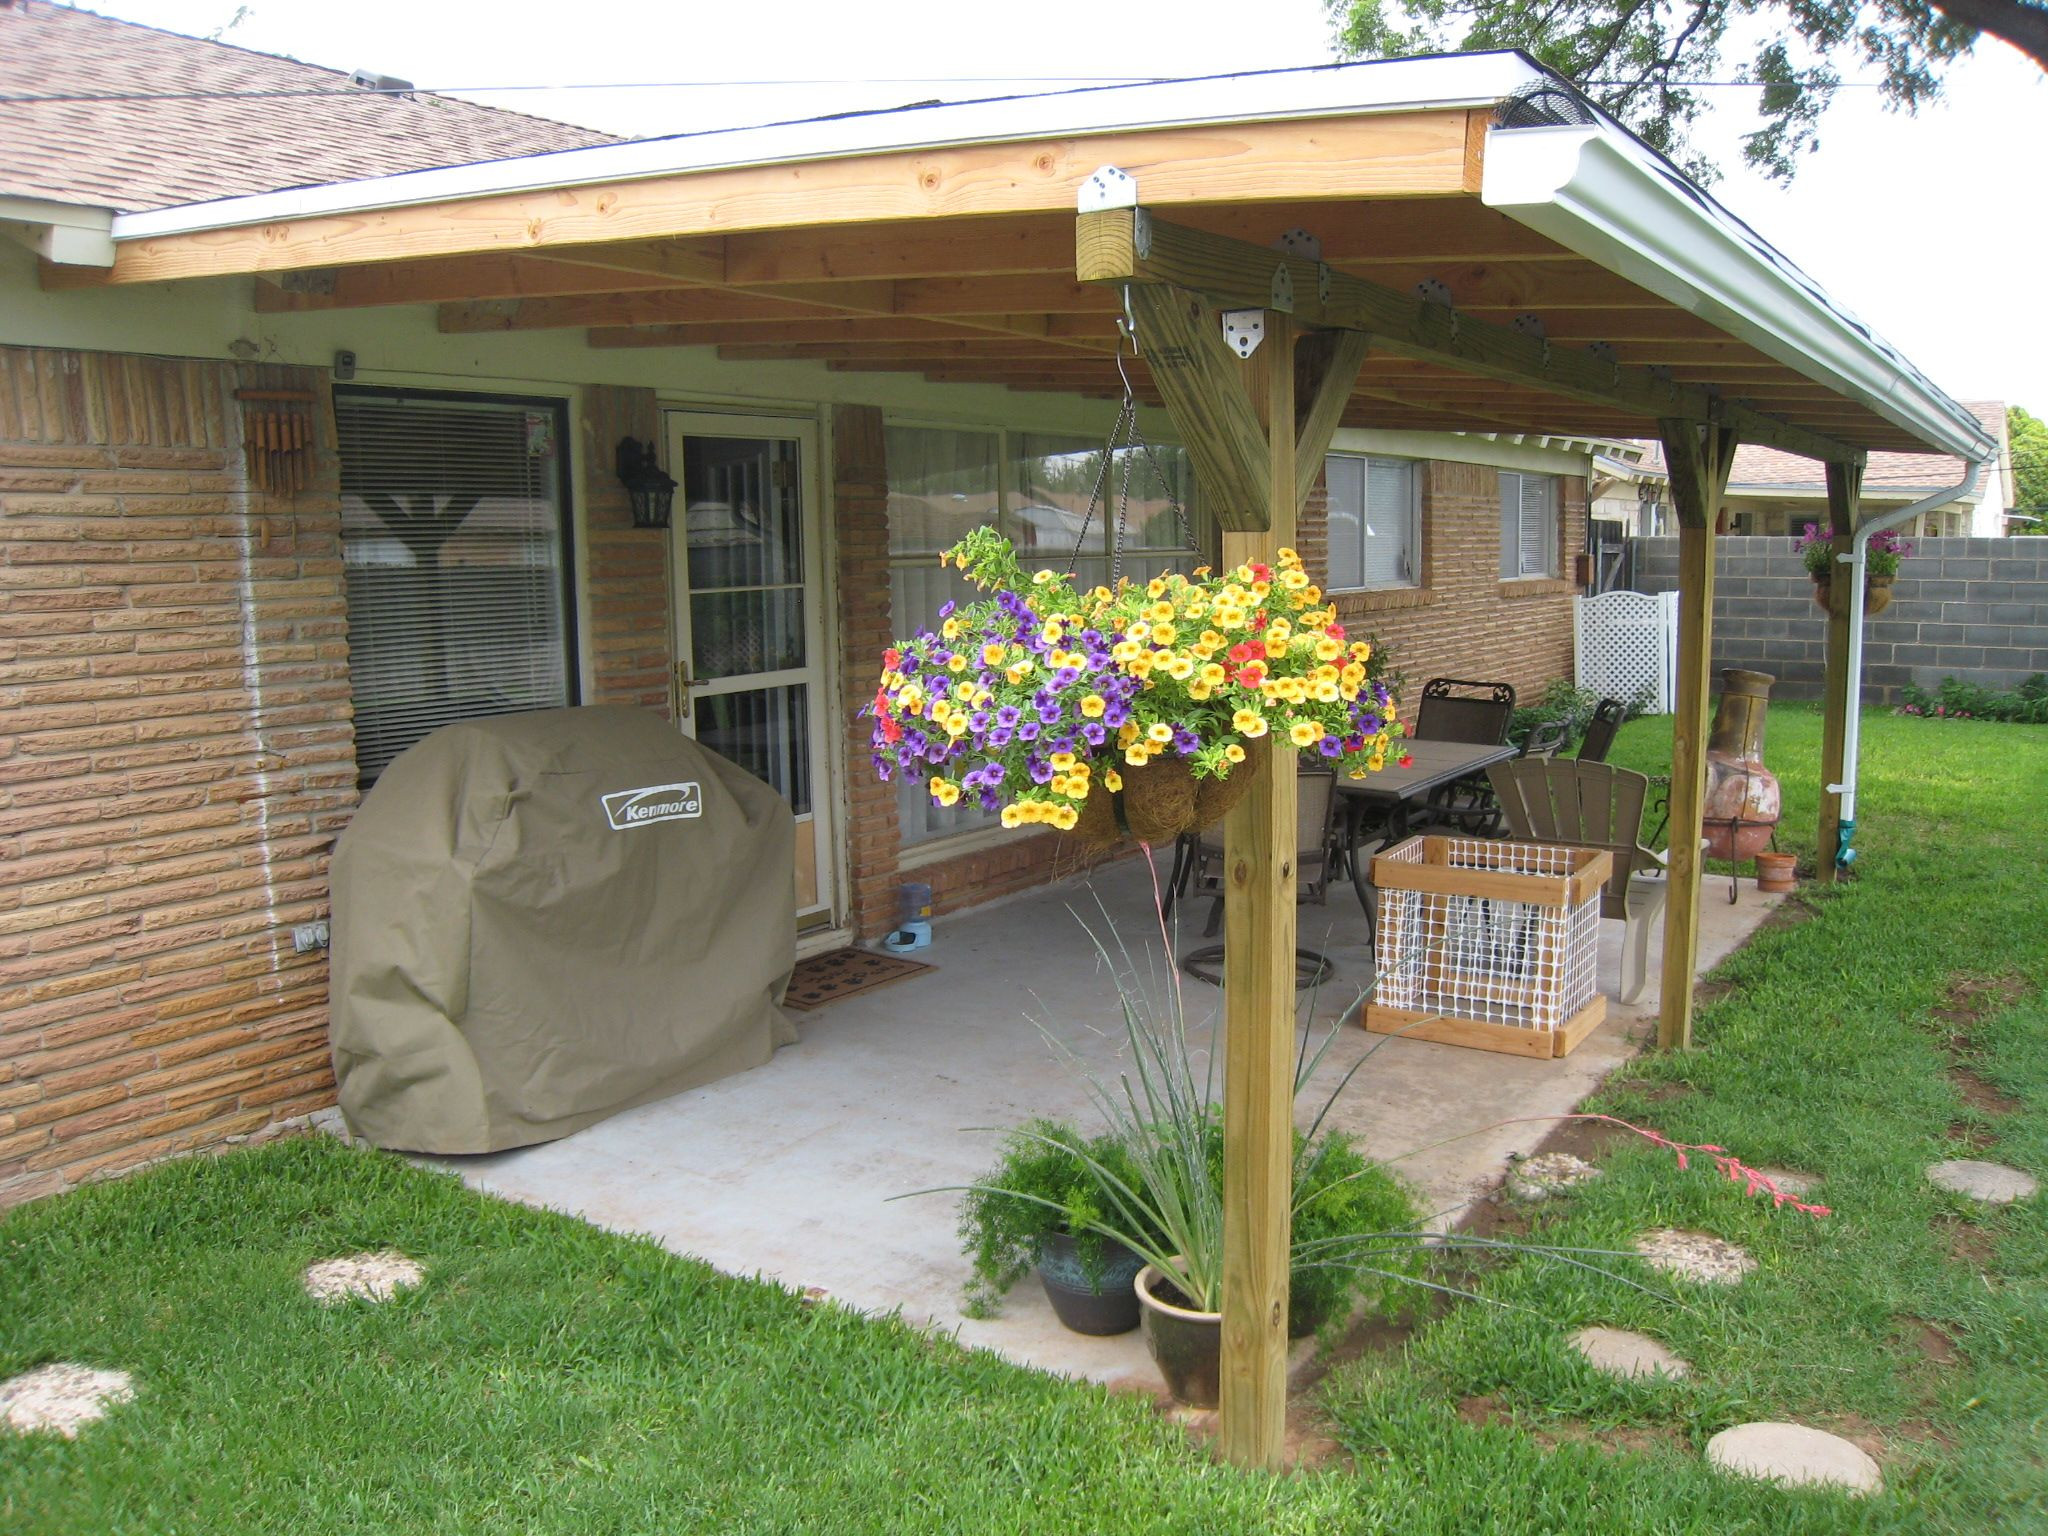 Best ideas about DIY Outdoor Patios . Save or Pin July 2011 Runner up Winner Patio cover makeover Now.